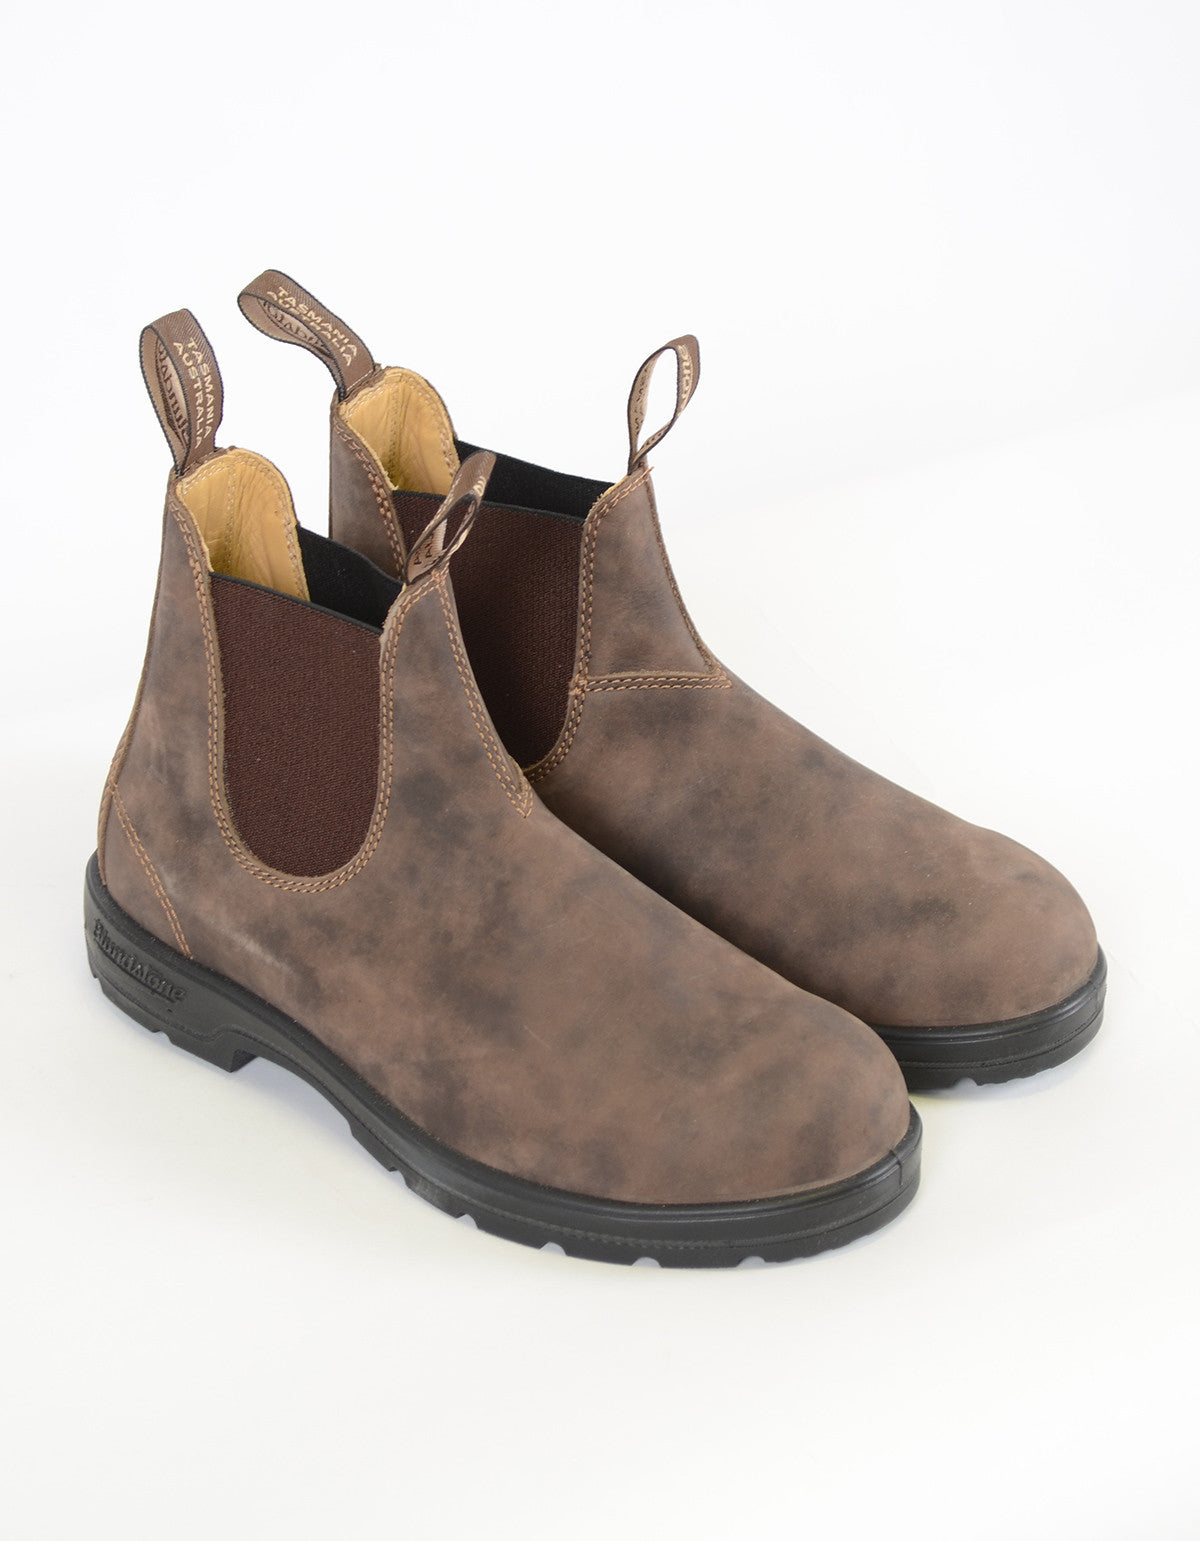 8f4178cab60b Blundstone Women s 585 Round Toe Boots Rustic Brown - Still Life - 3